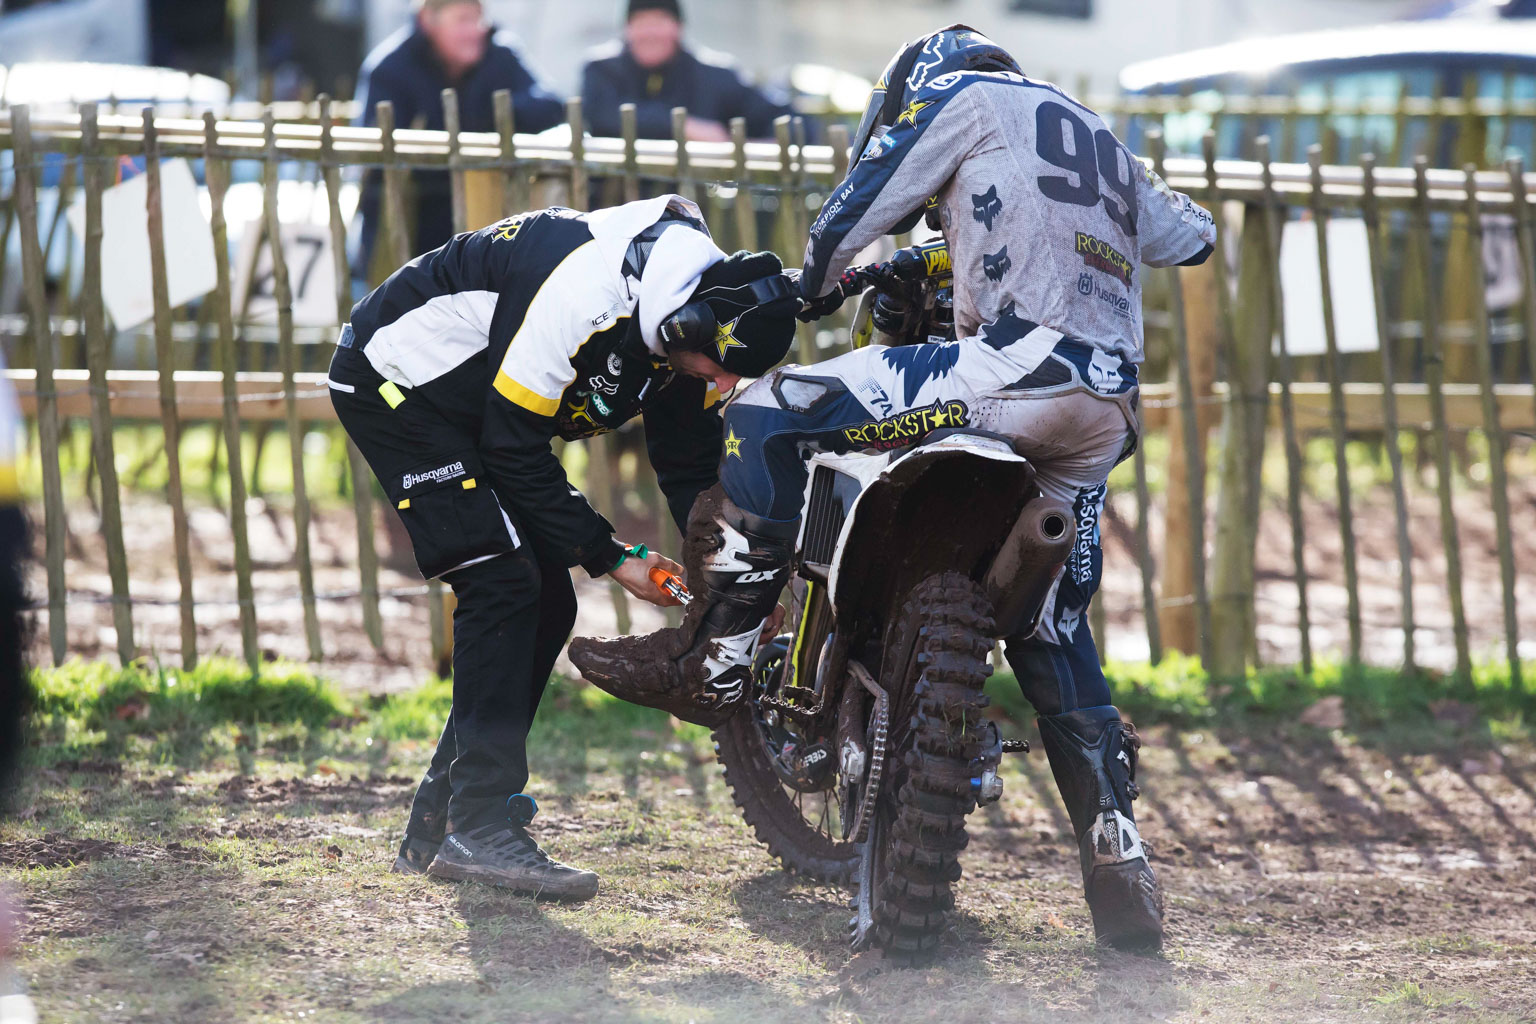 His mechanic tries to solve Anstie's boot problem but to no avail